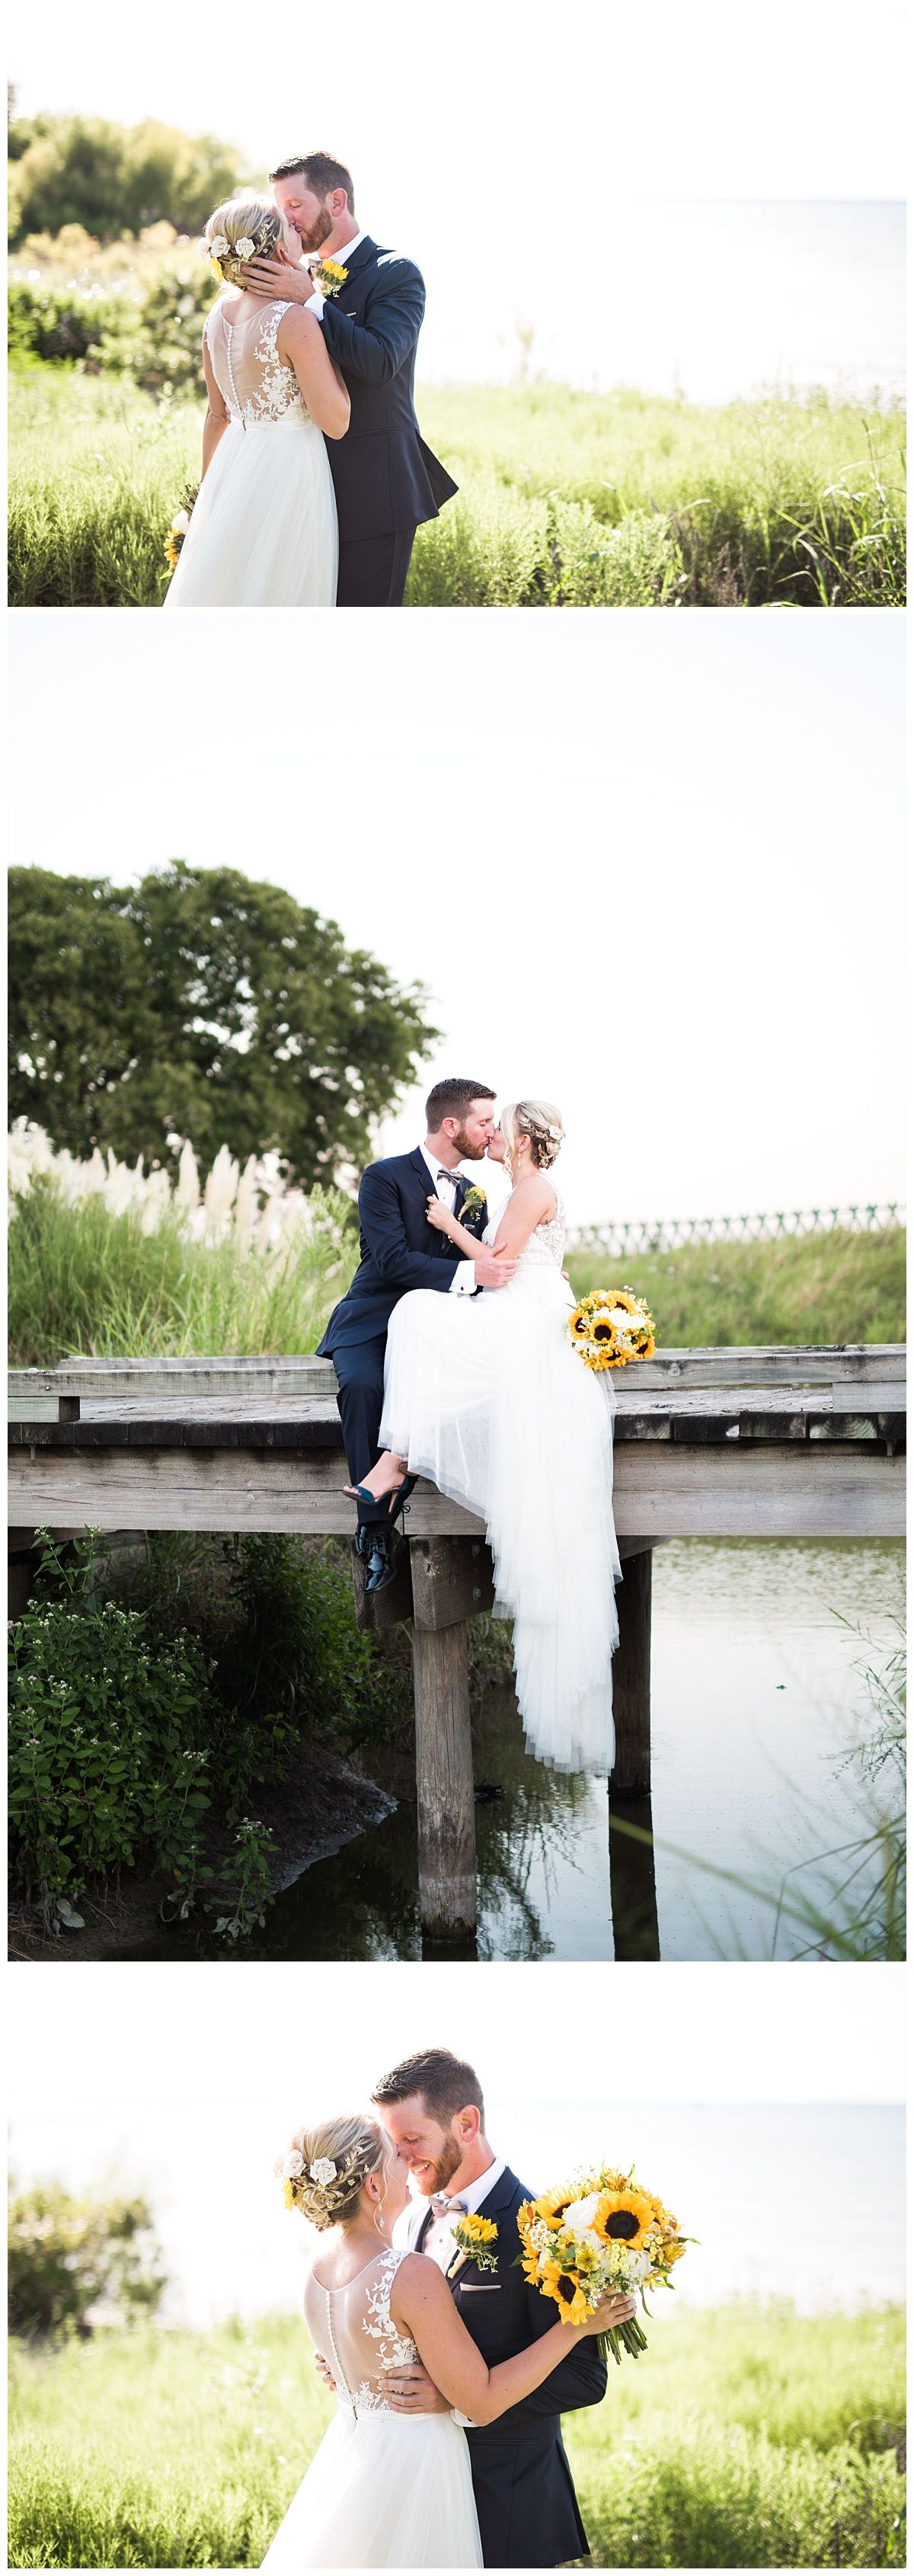 Wedding Photographer based in Dallas, TX - Adria Lea Photography - Sunflowers - First Look